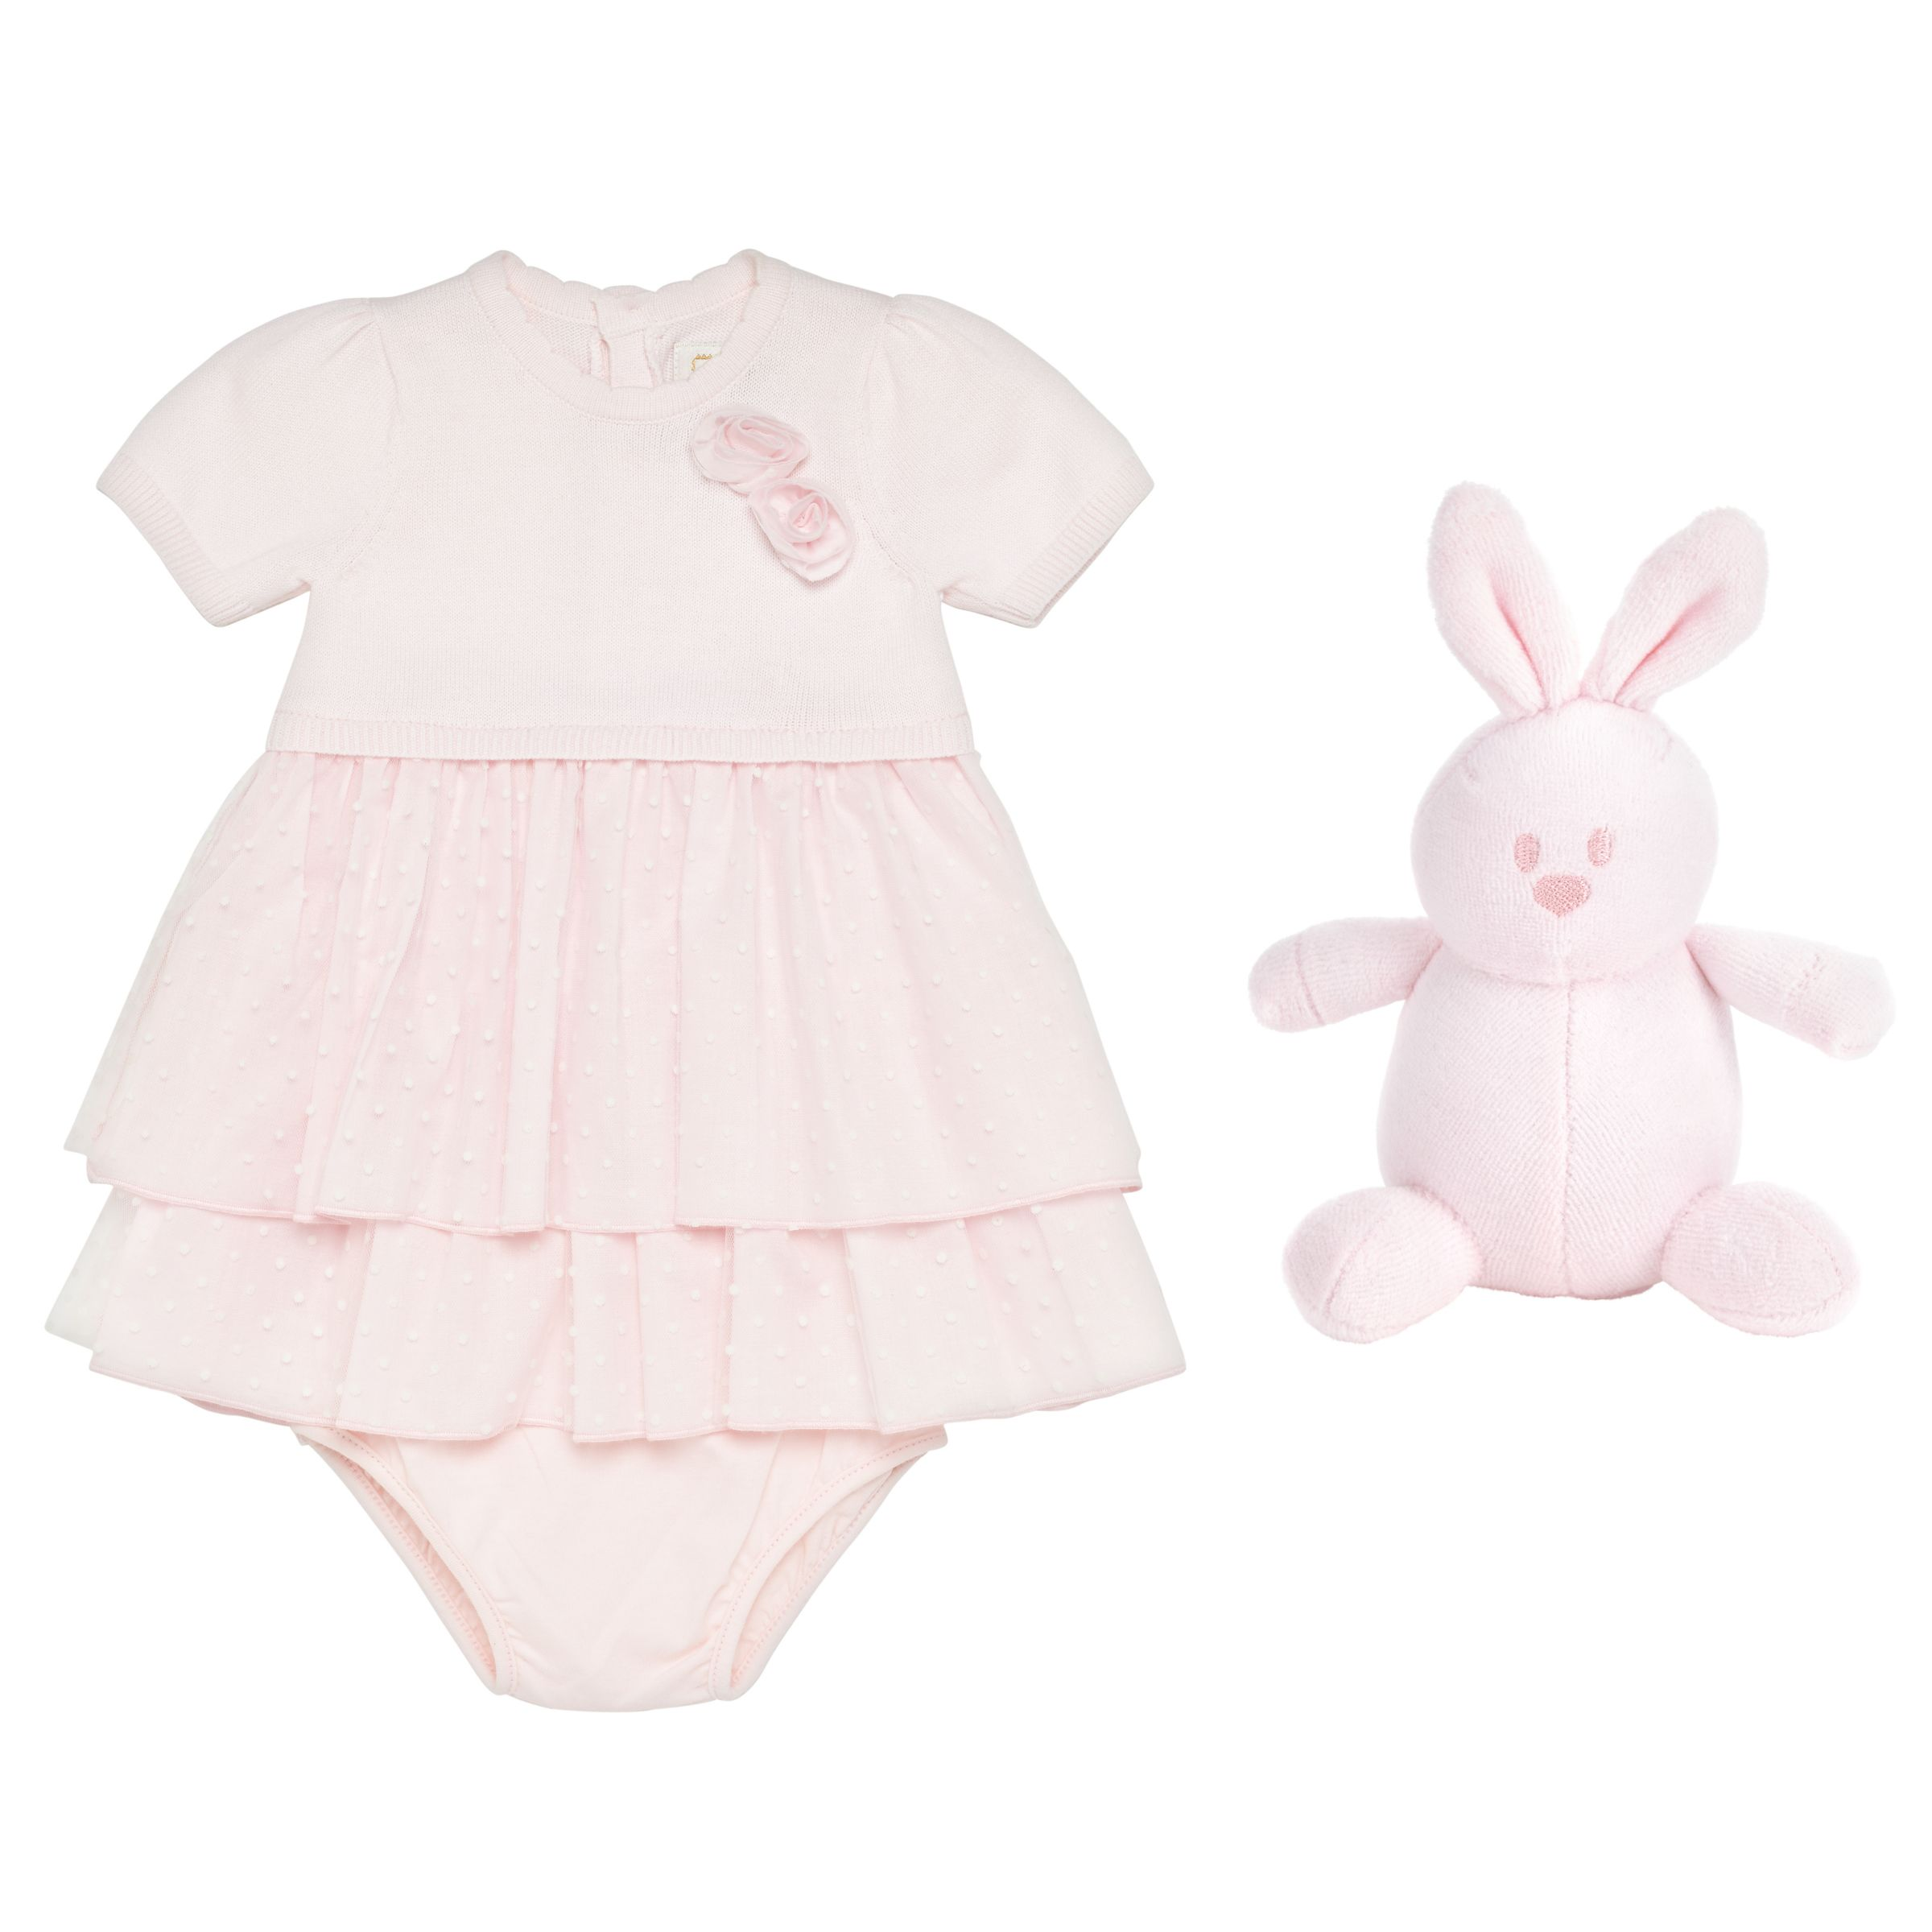 Emile et Rose Emile et Rose Baby Kesia Spotted Tulle Dress with Knickers, Pink